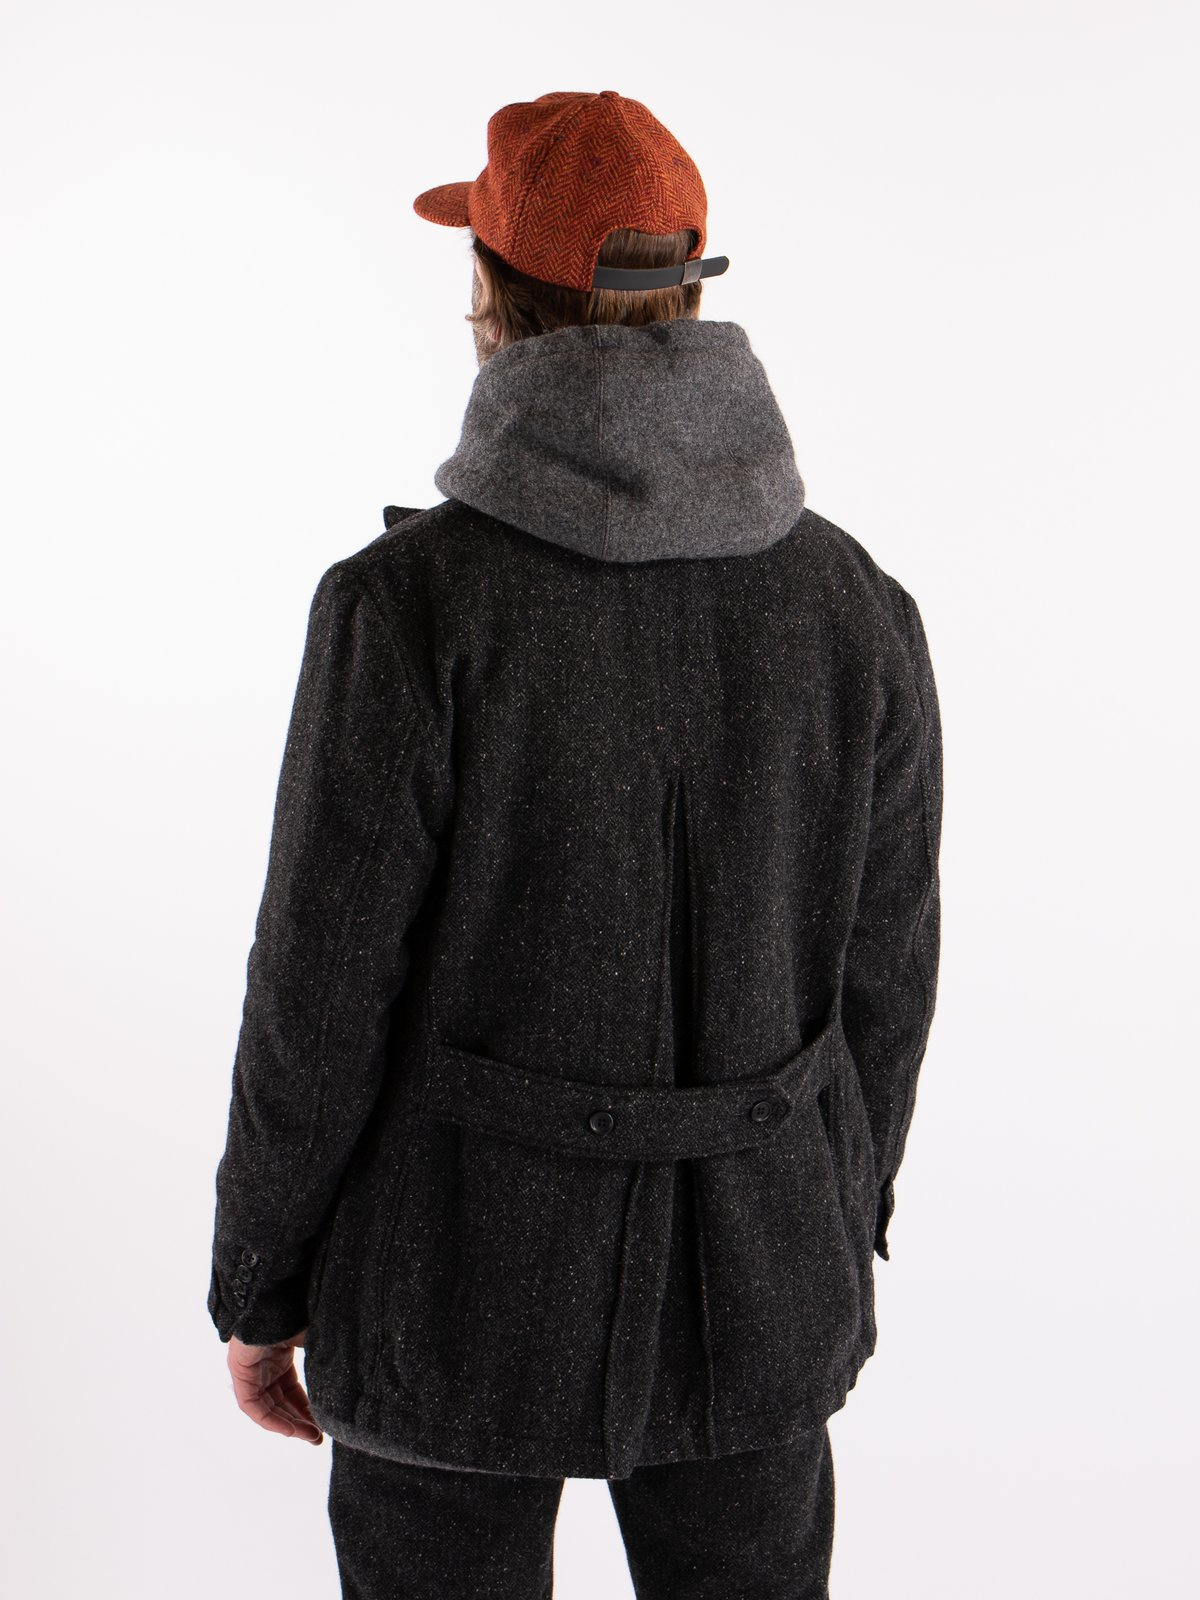 Charcoal HB Tweed Grim Jacket - Image 3